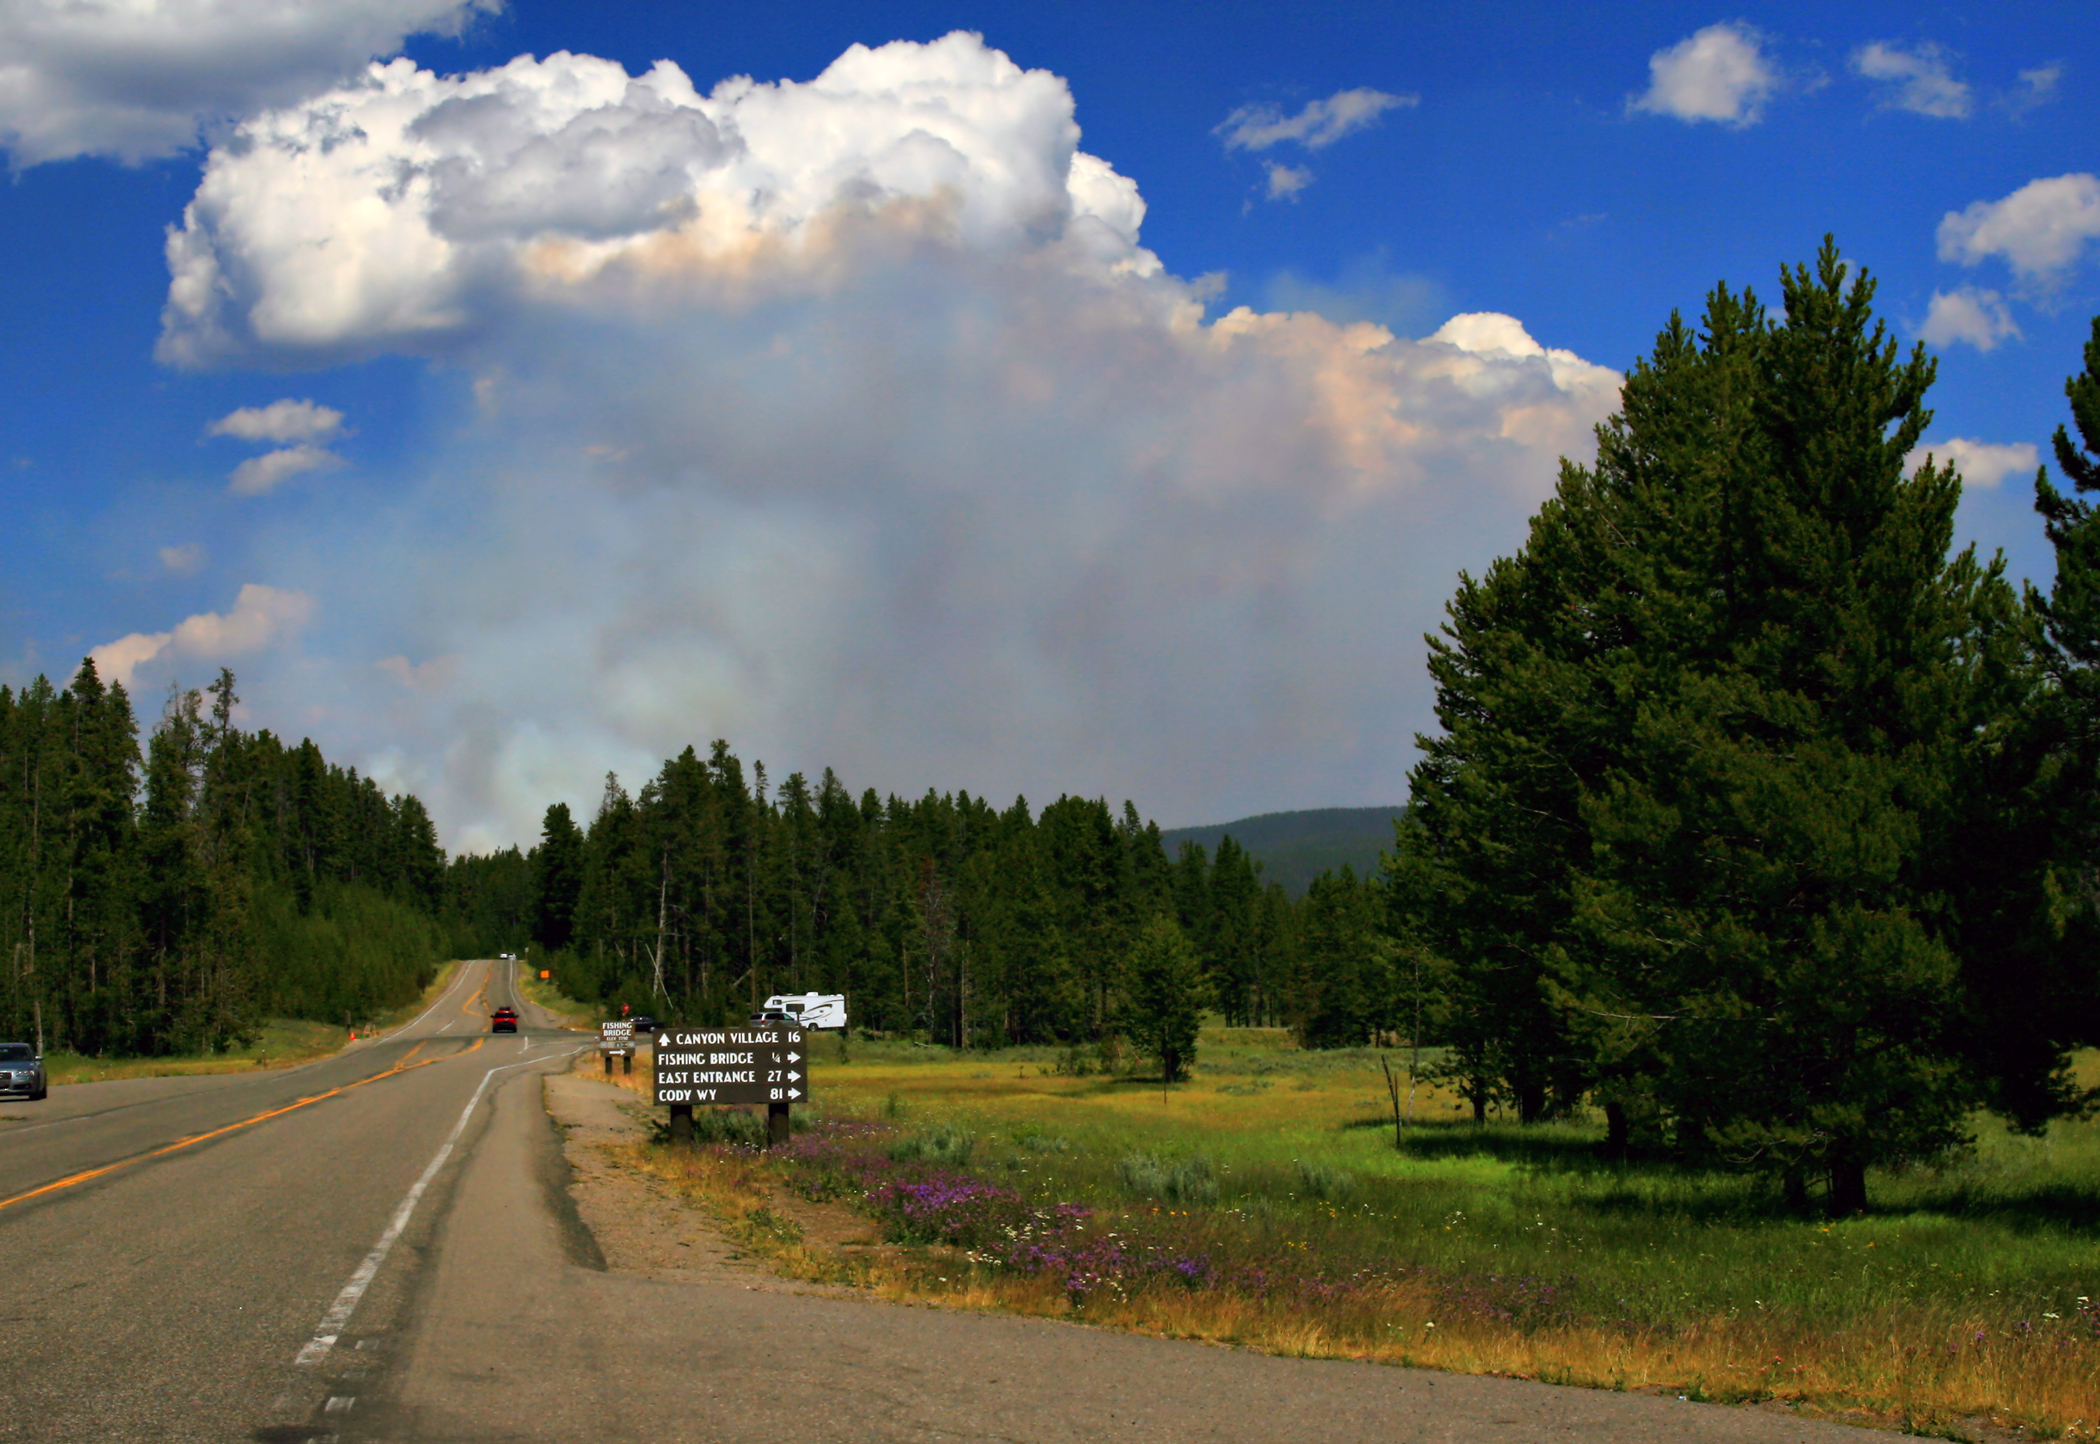 A paved road with trees and grasses on the side with a large, white and dark gray smoke cloud rising in the distance.